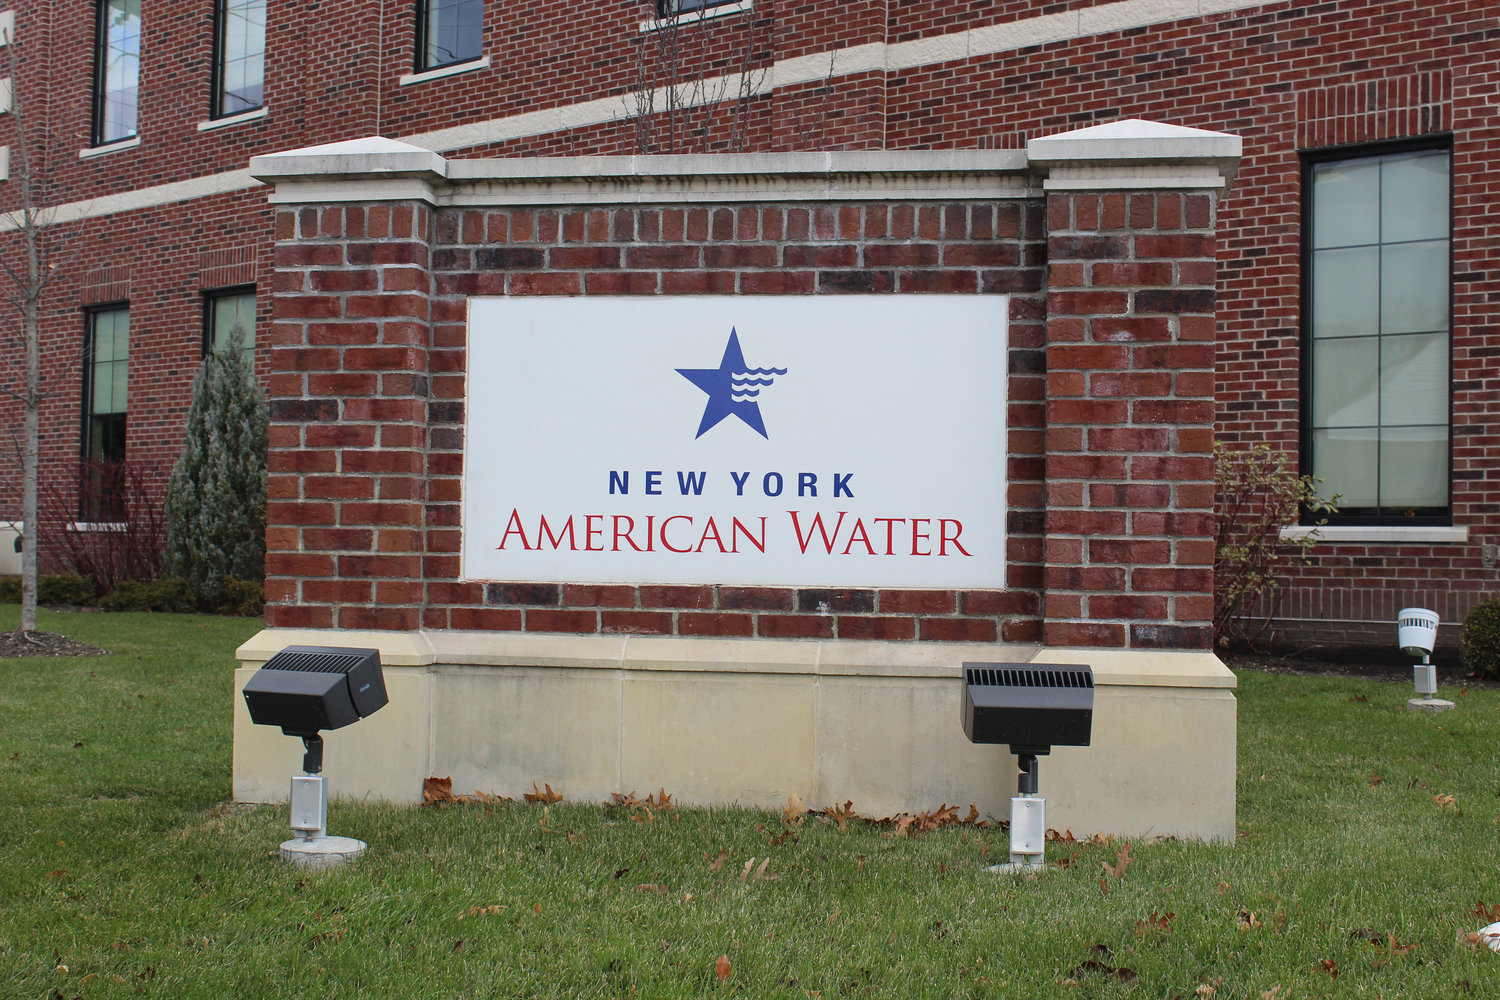 New York American Water customers in the Lynbrook service area are likely to face a significant rate hike on April 1.